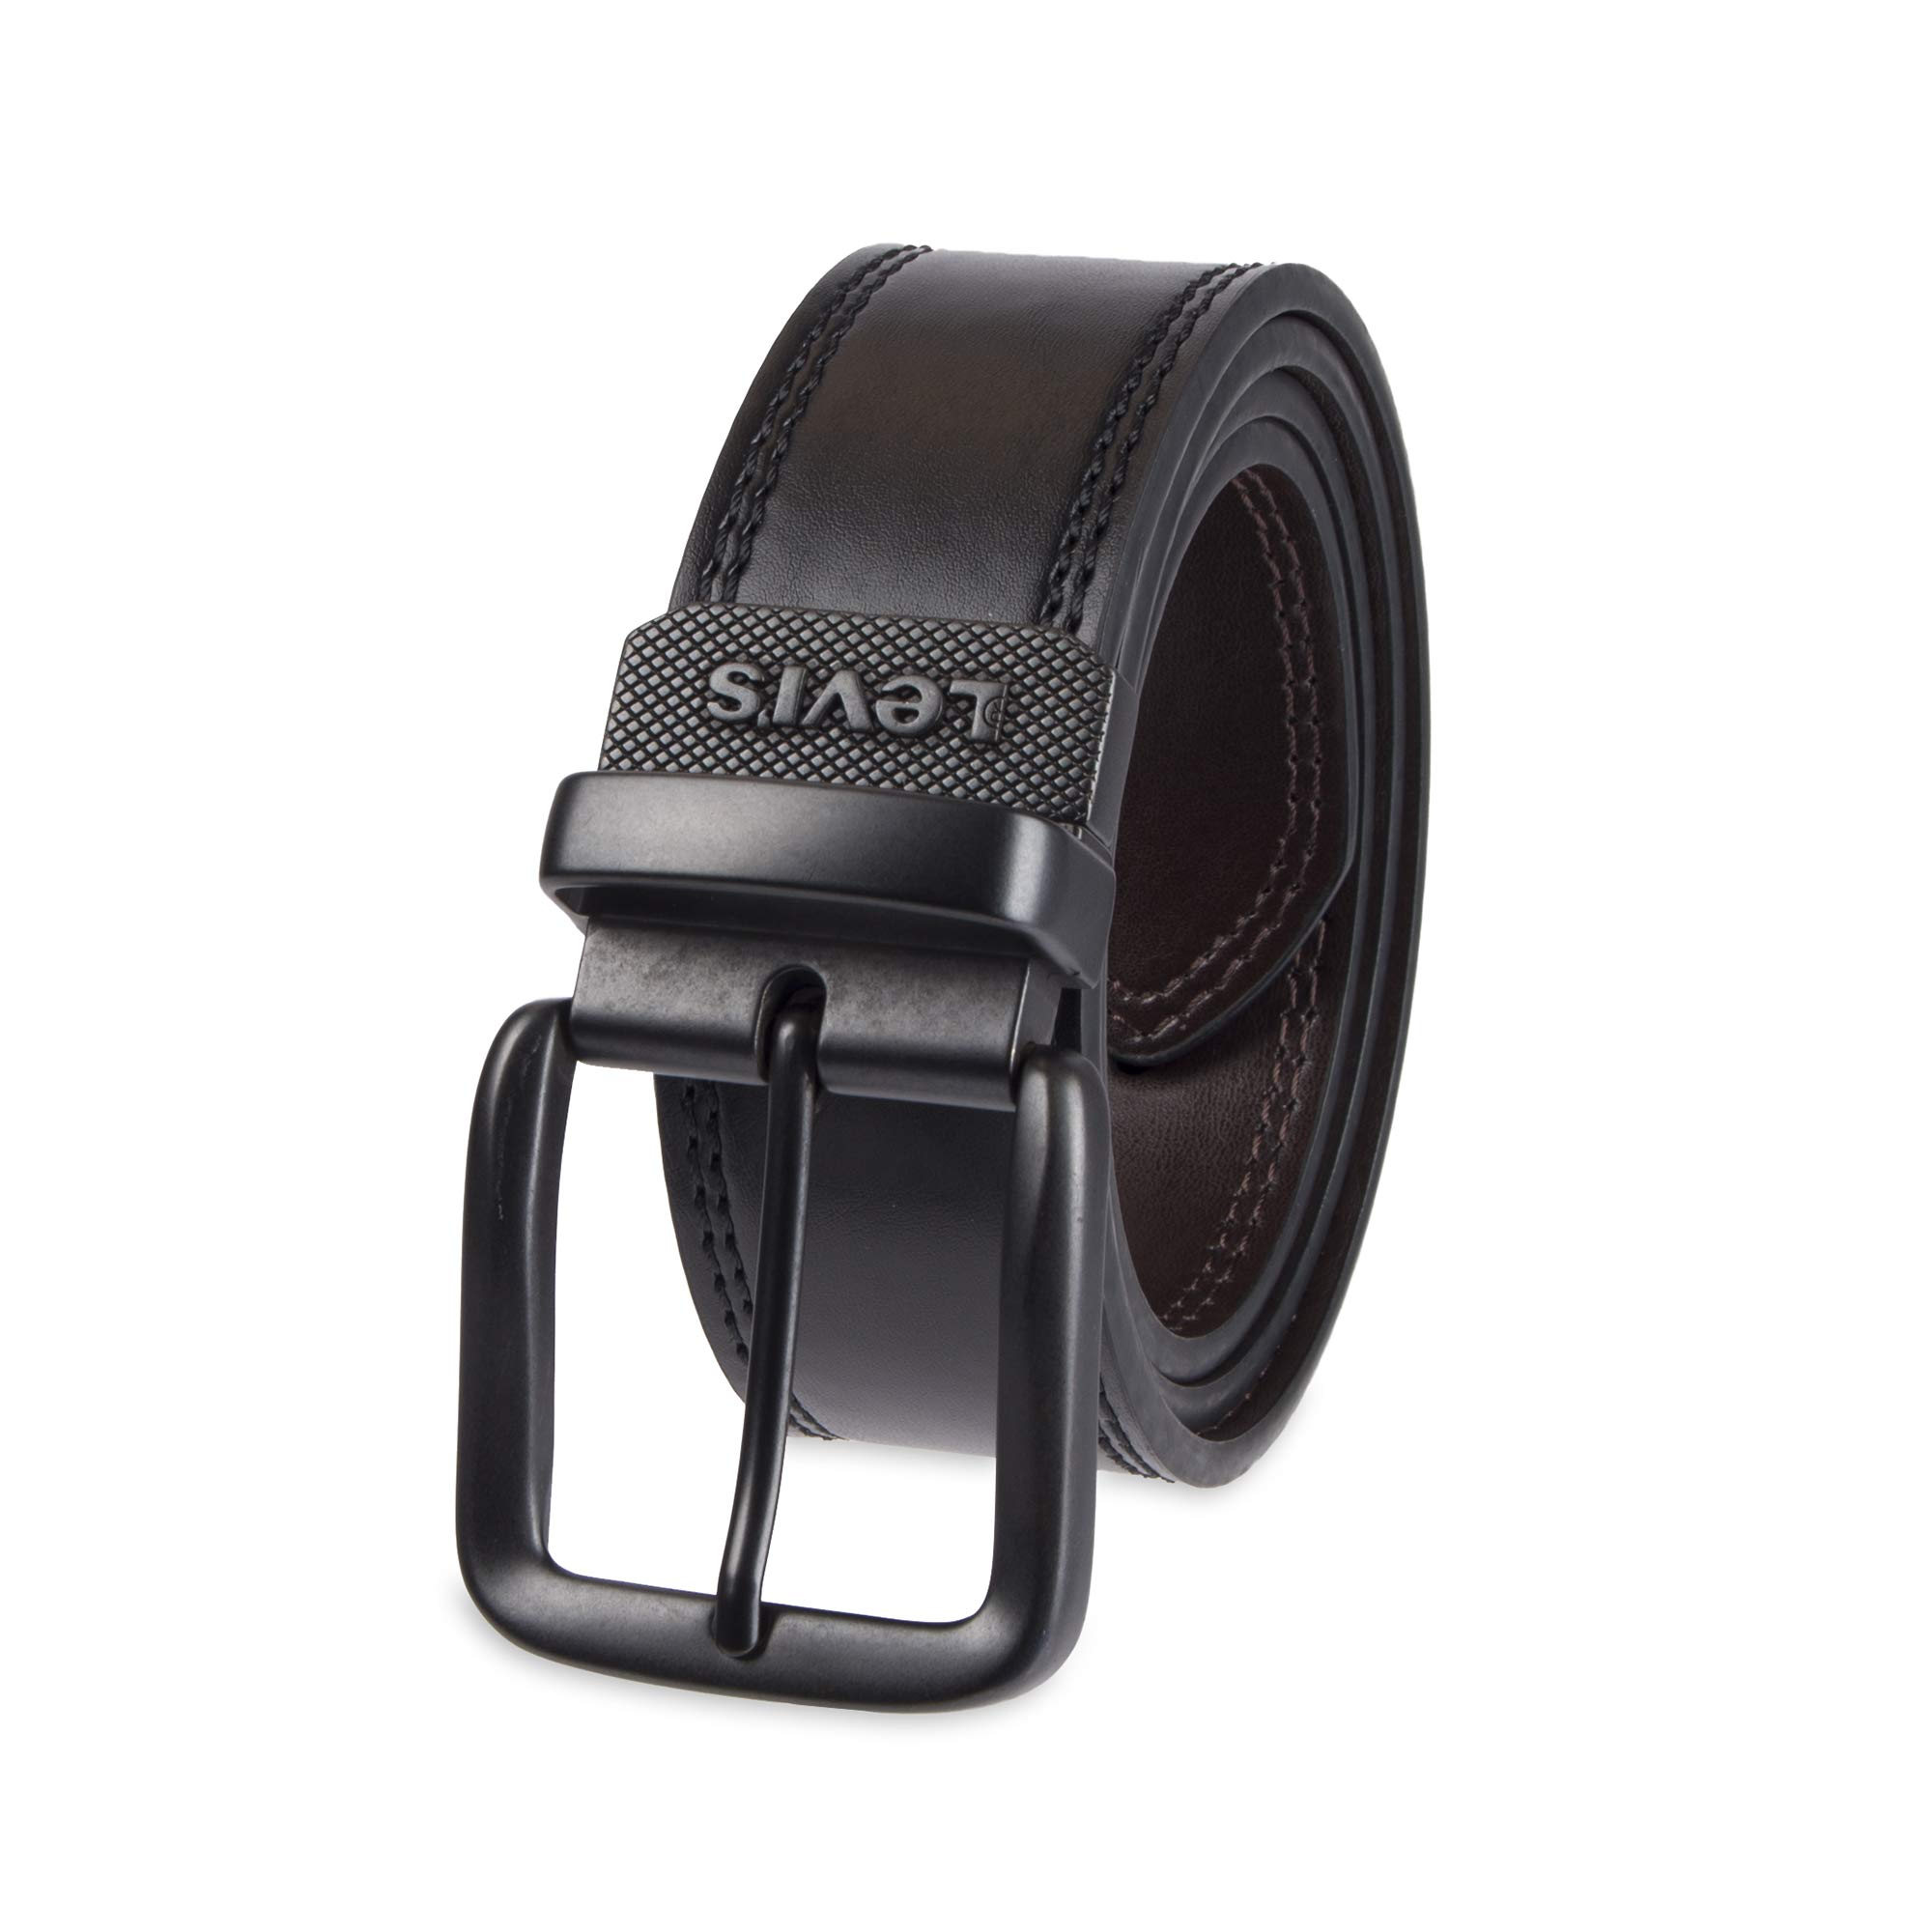 02a642ae09559 Galleon - Levi's Men's Wide Reversible Casual Jeans Belt,Black/Brown,40